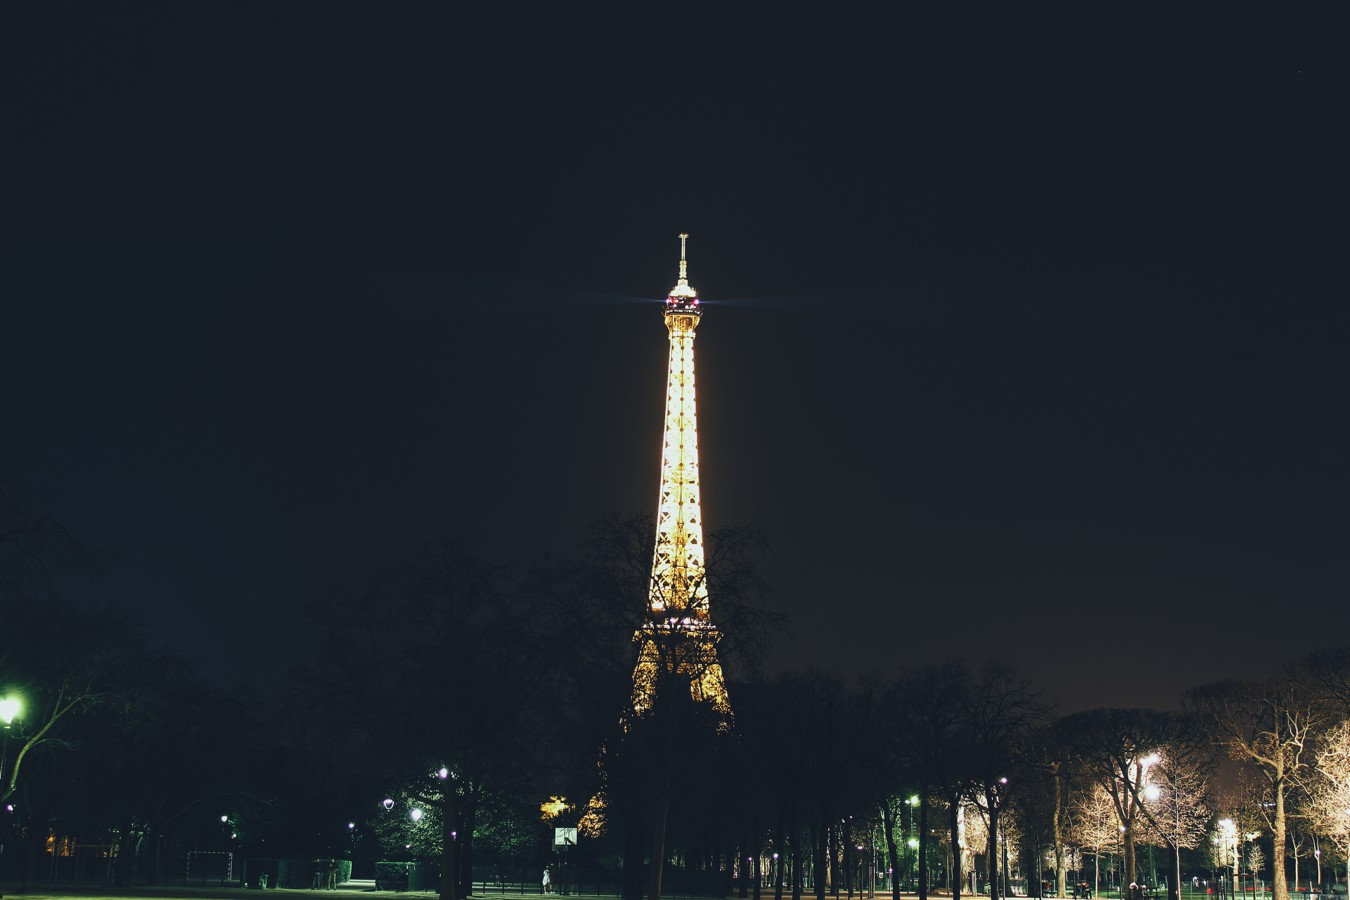 Things to do in Paris - Take in the view from the top of the Eiffel Tower (1)